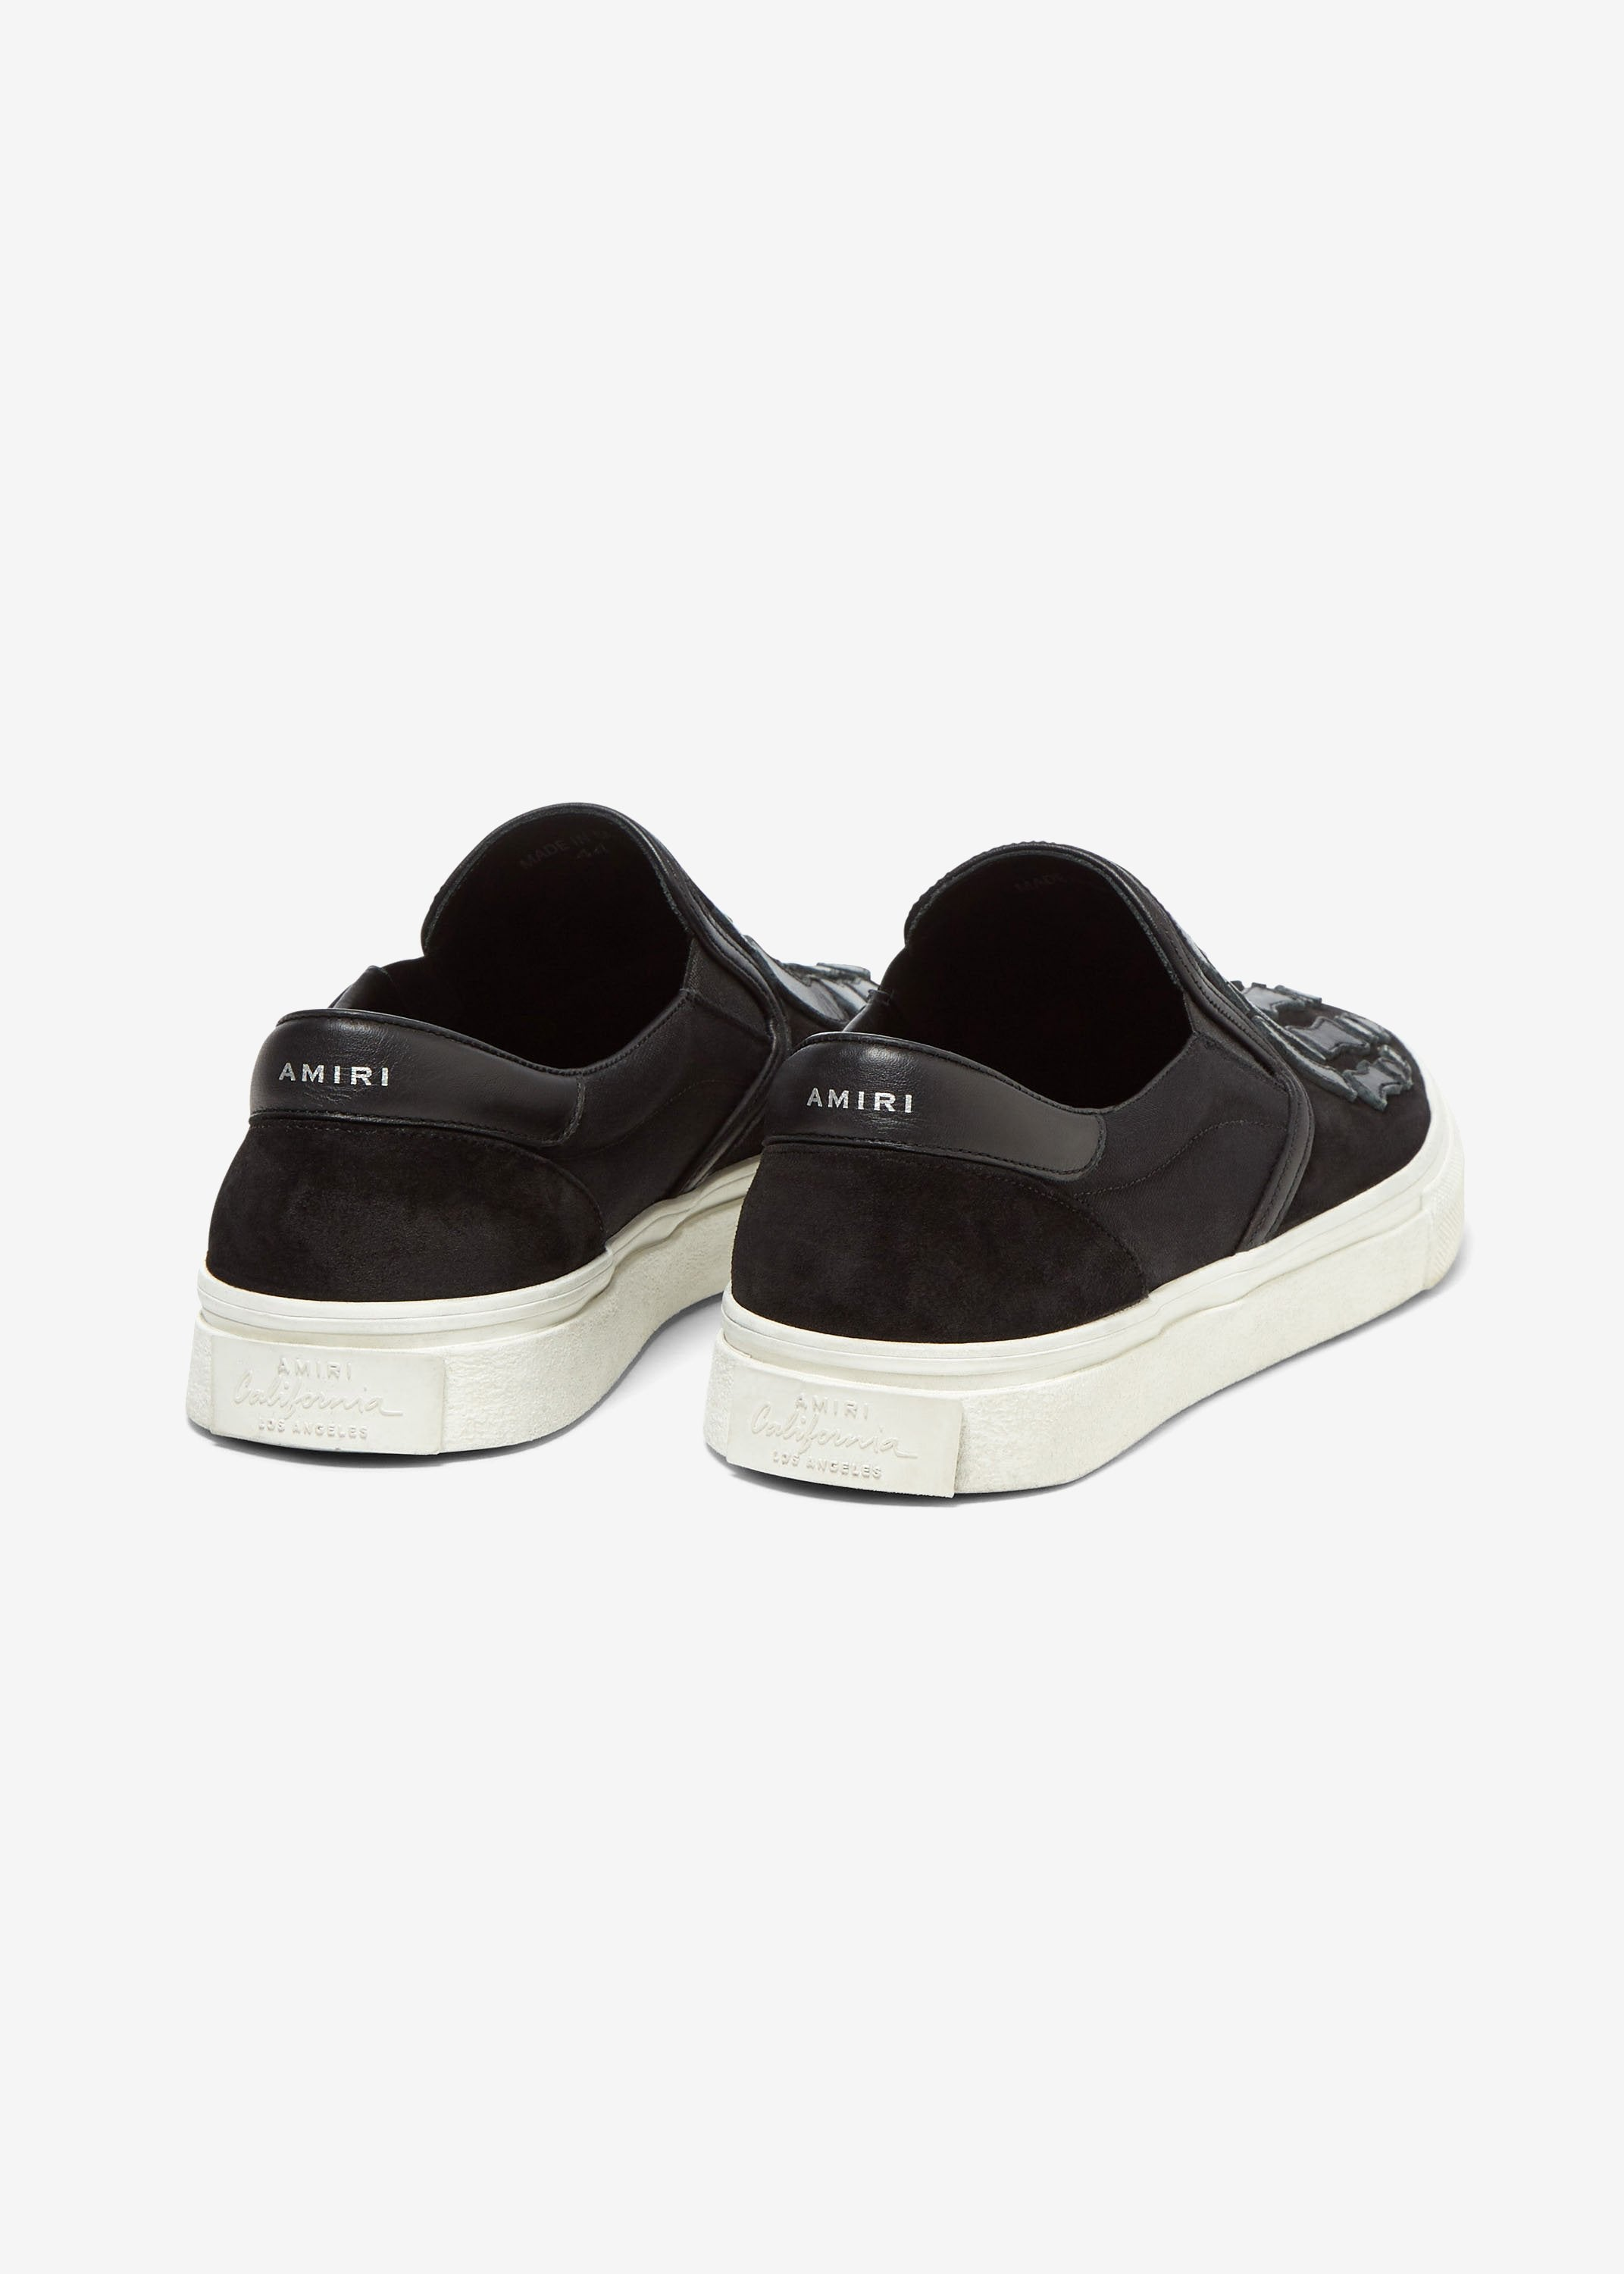 skel-toe-slip-on-black-black-image-3